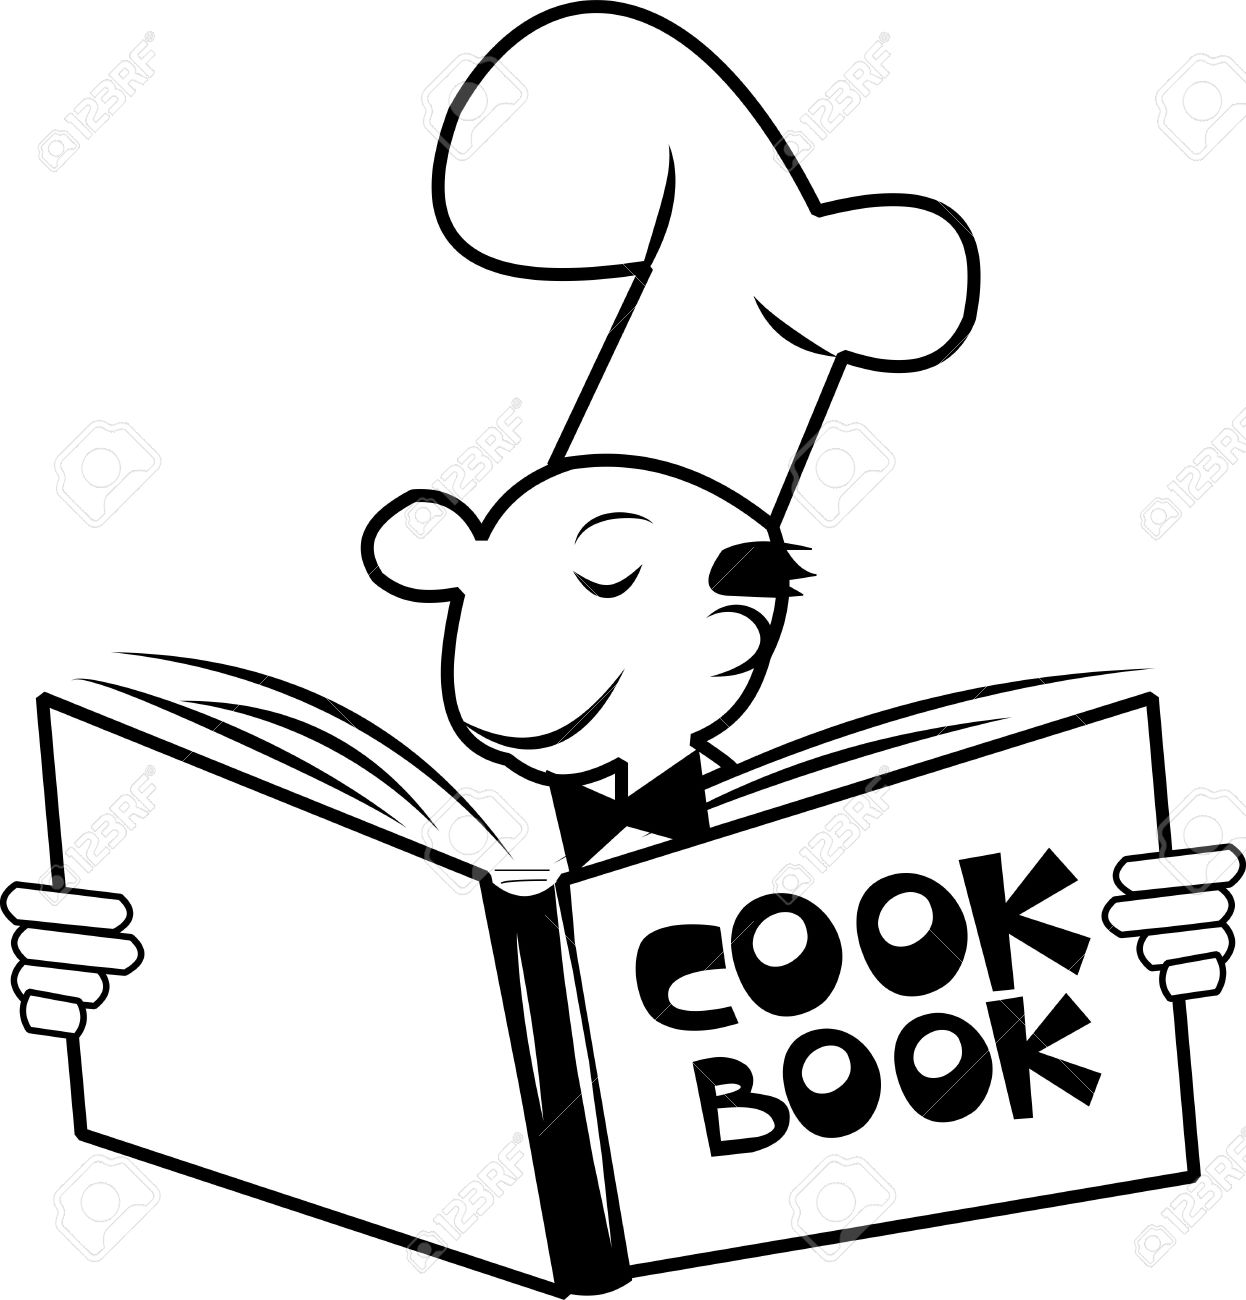 Cookbook With Chef Royalty Free Cliparts Vectors And Stock Rh 123rf Com